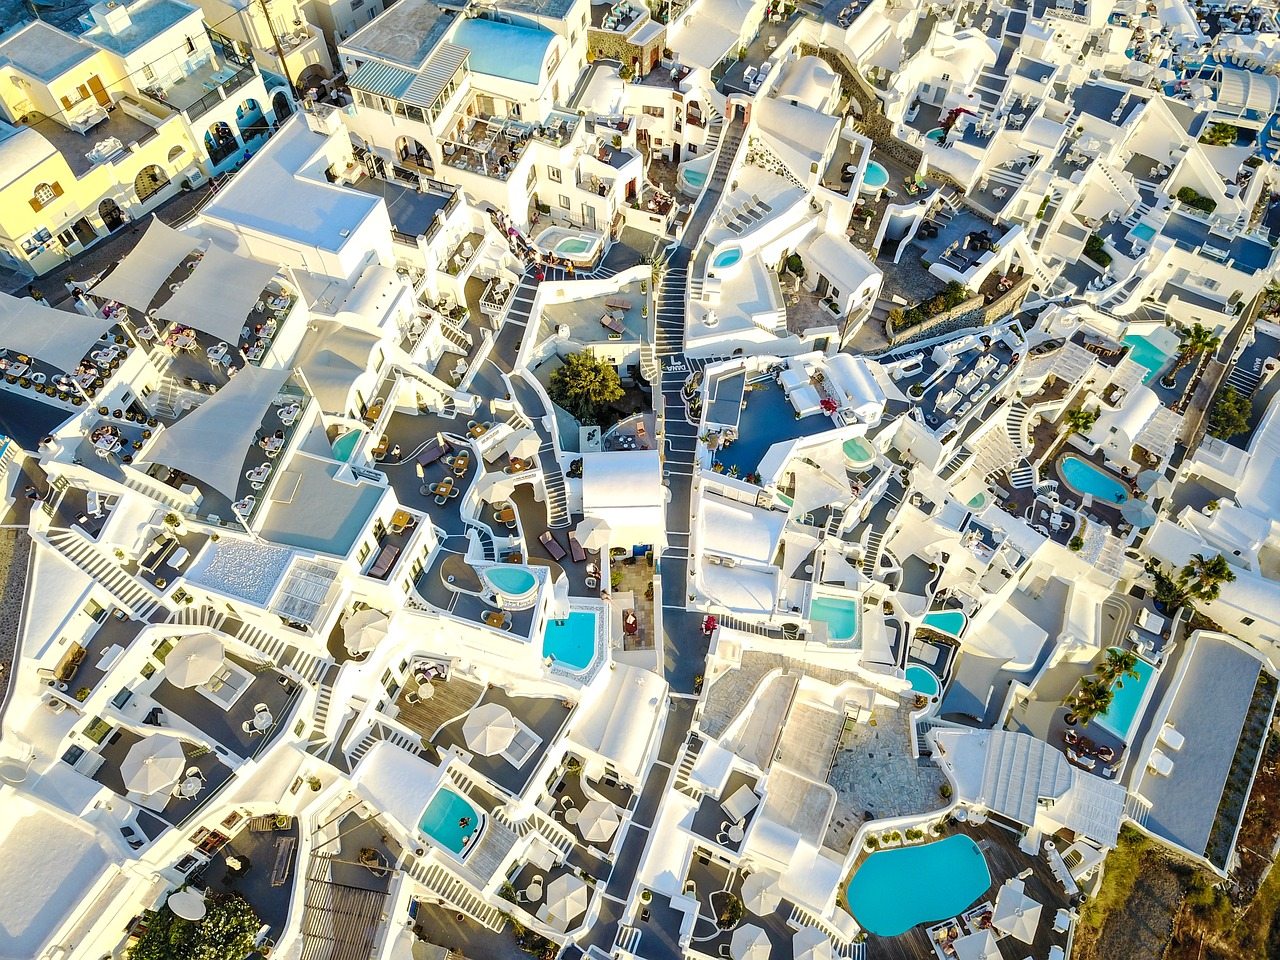 A drone's eye view of Santorini in the Cyclades Islands of Greece